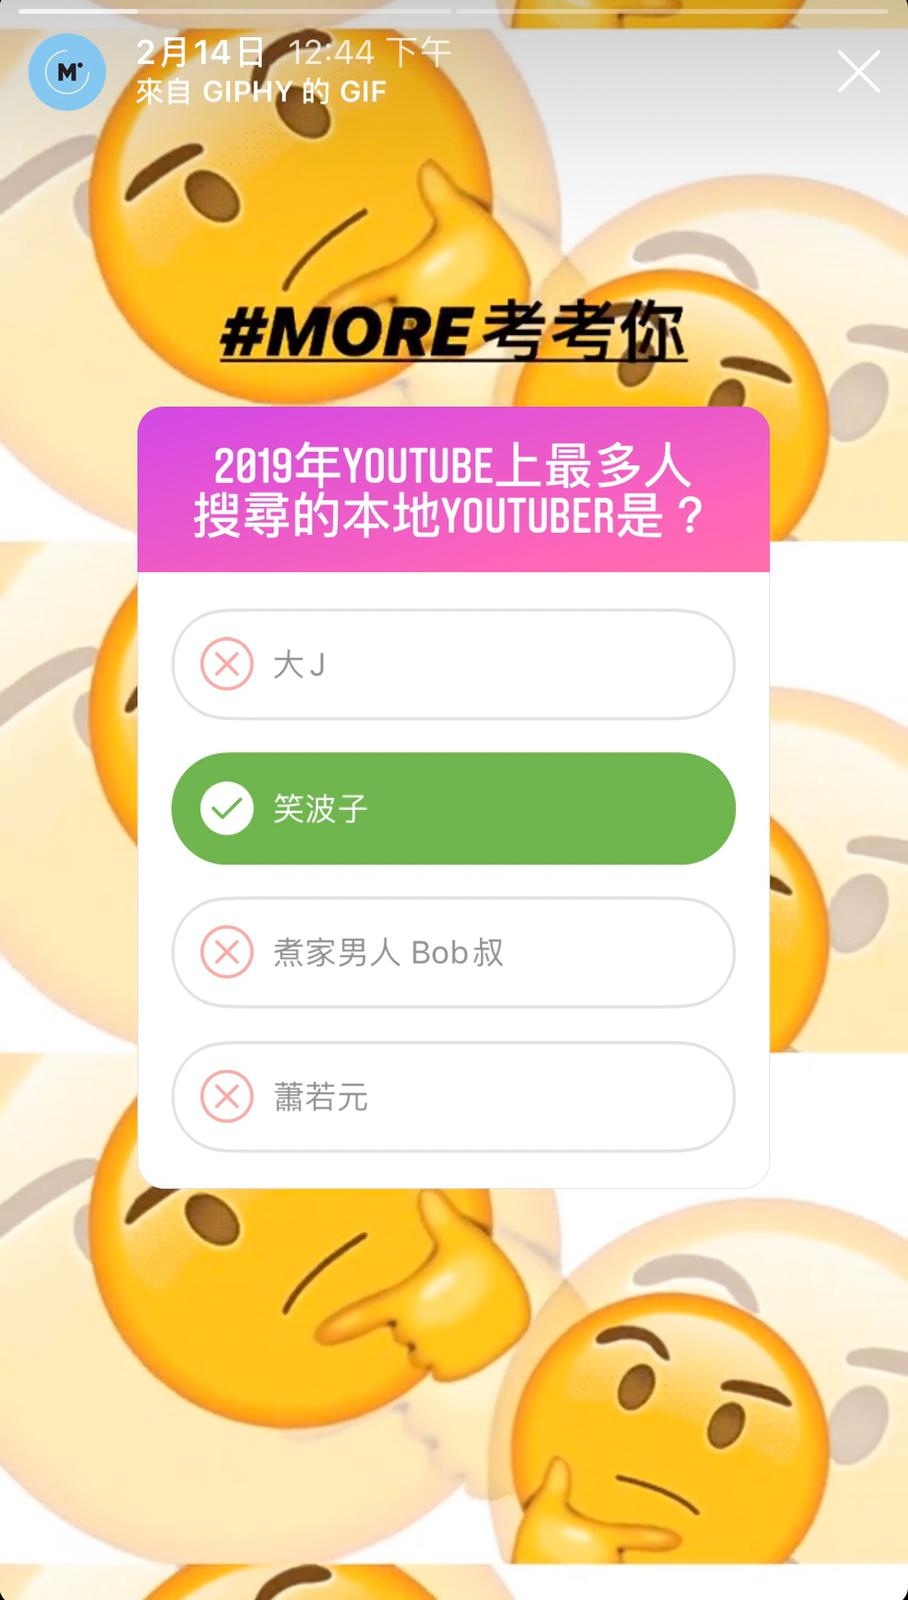 IG Story about most searched HK Youtuber